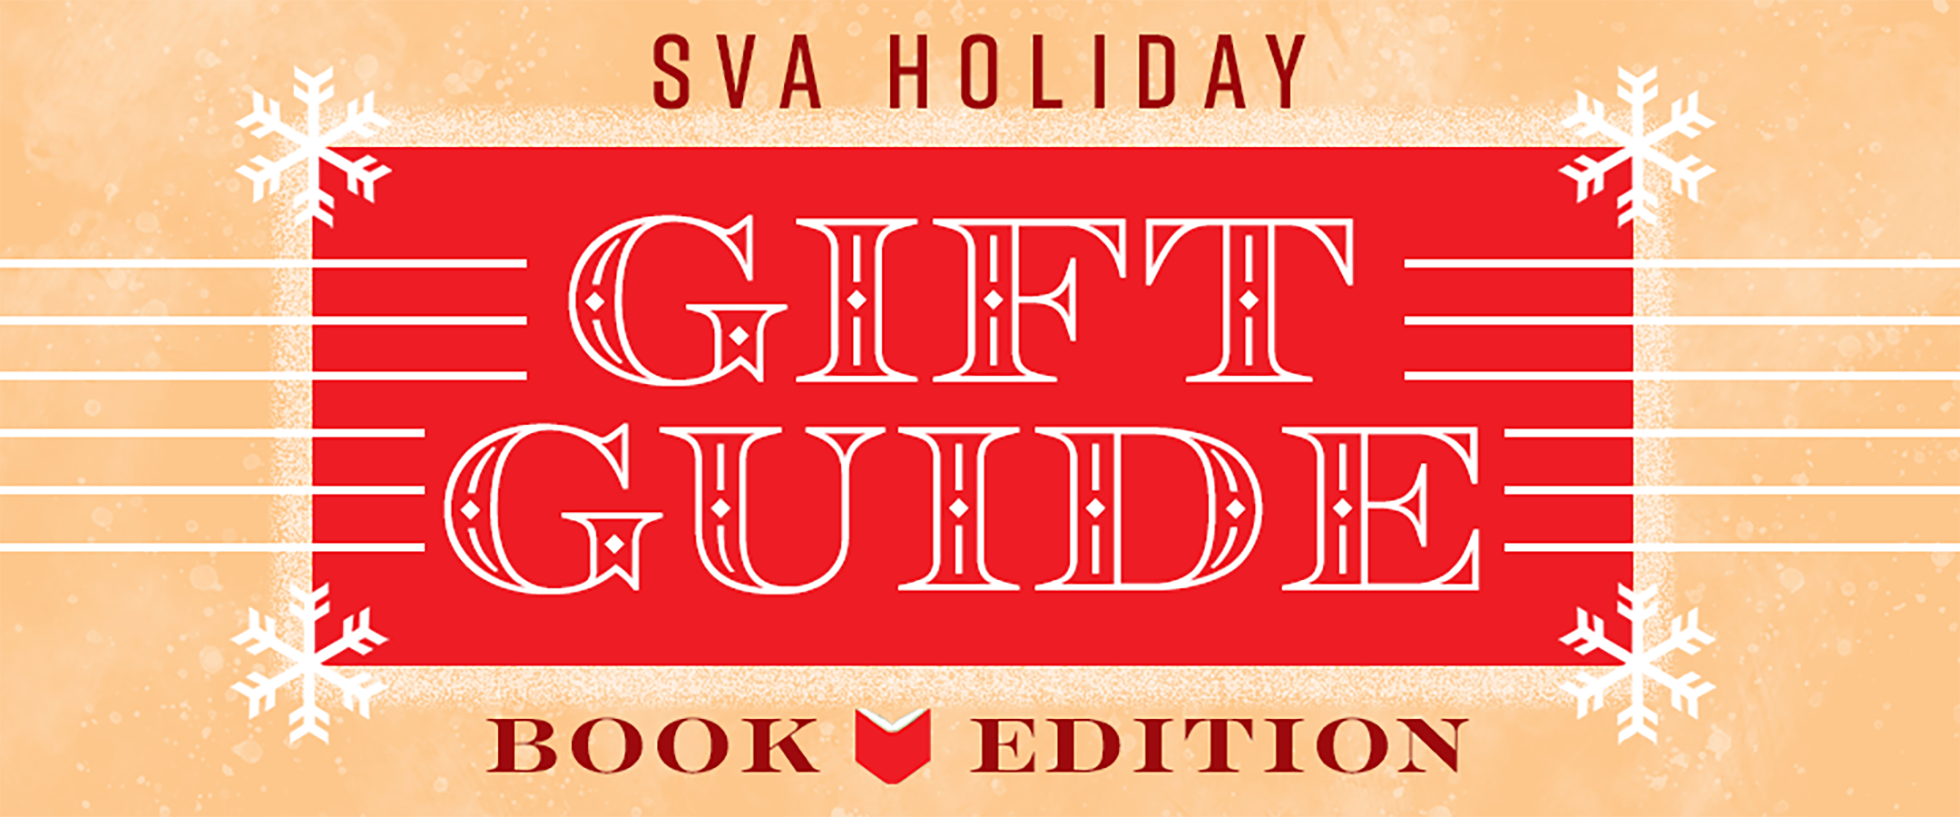 SVA's holiday's gift guide book poster.